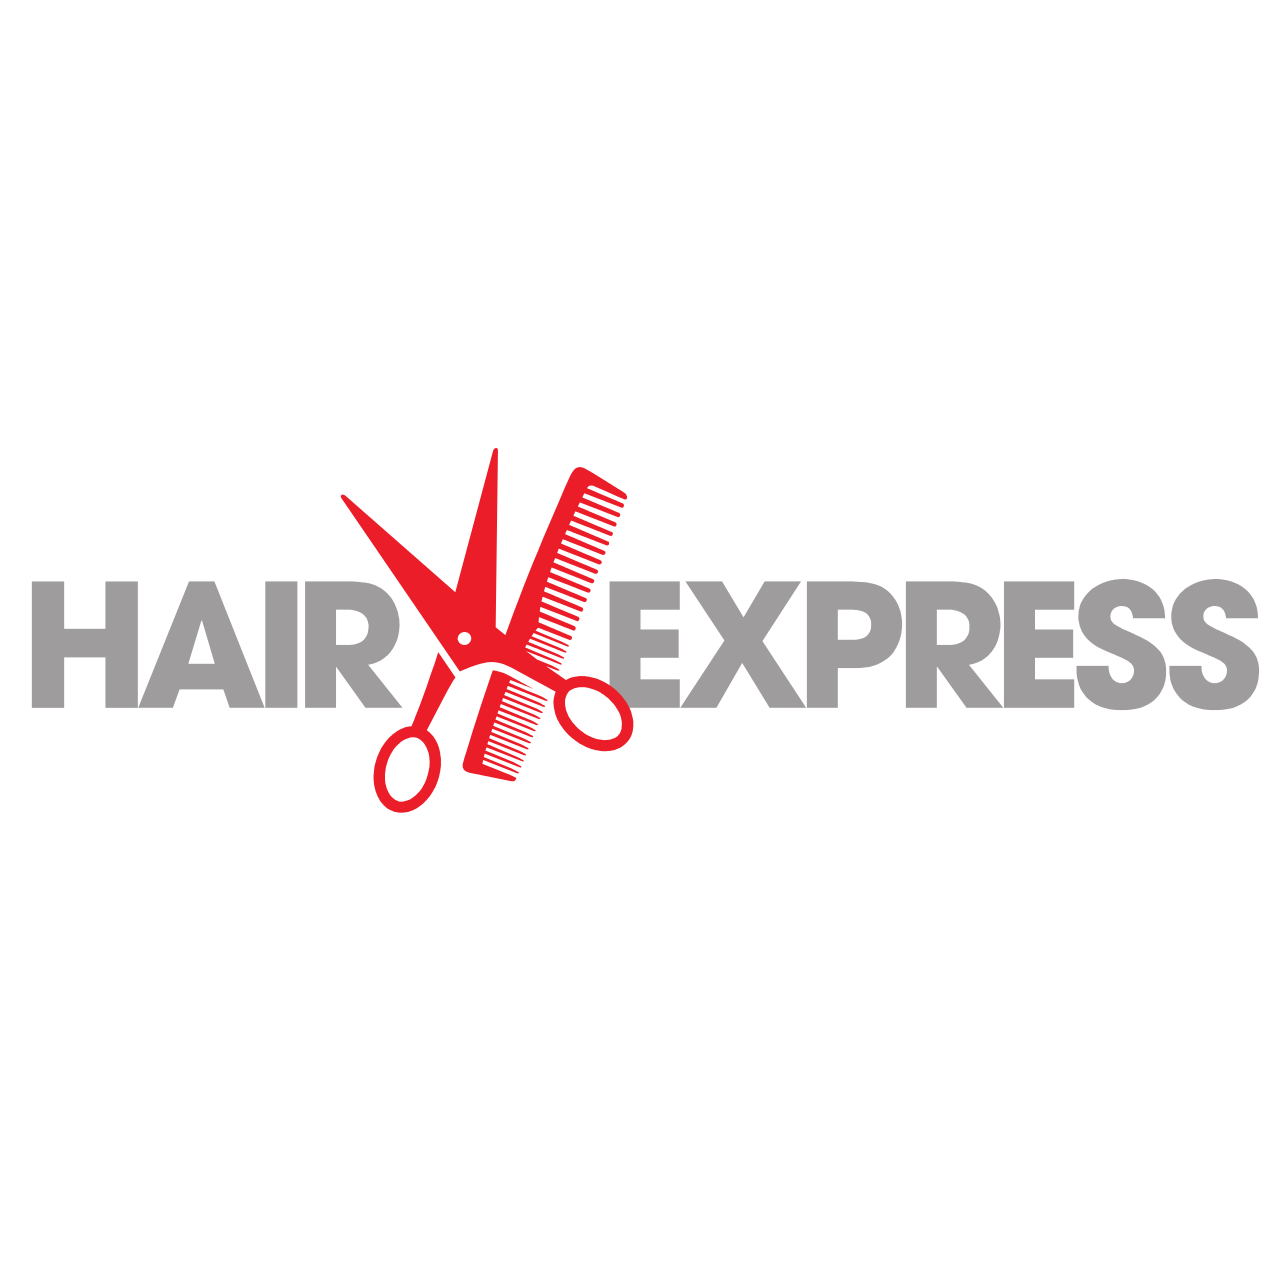 HairExpress in München